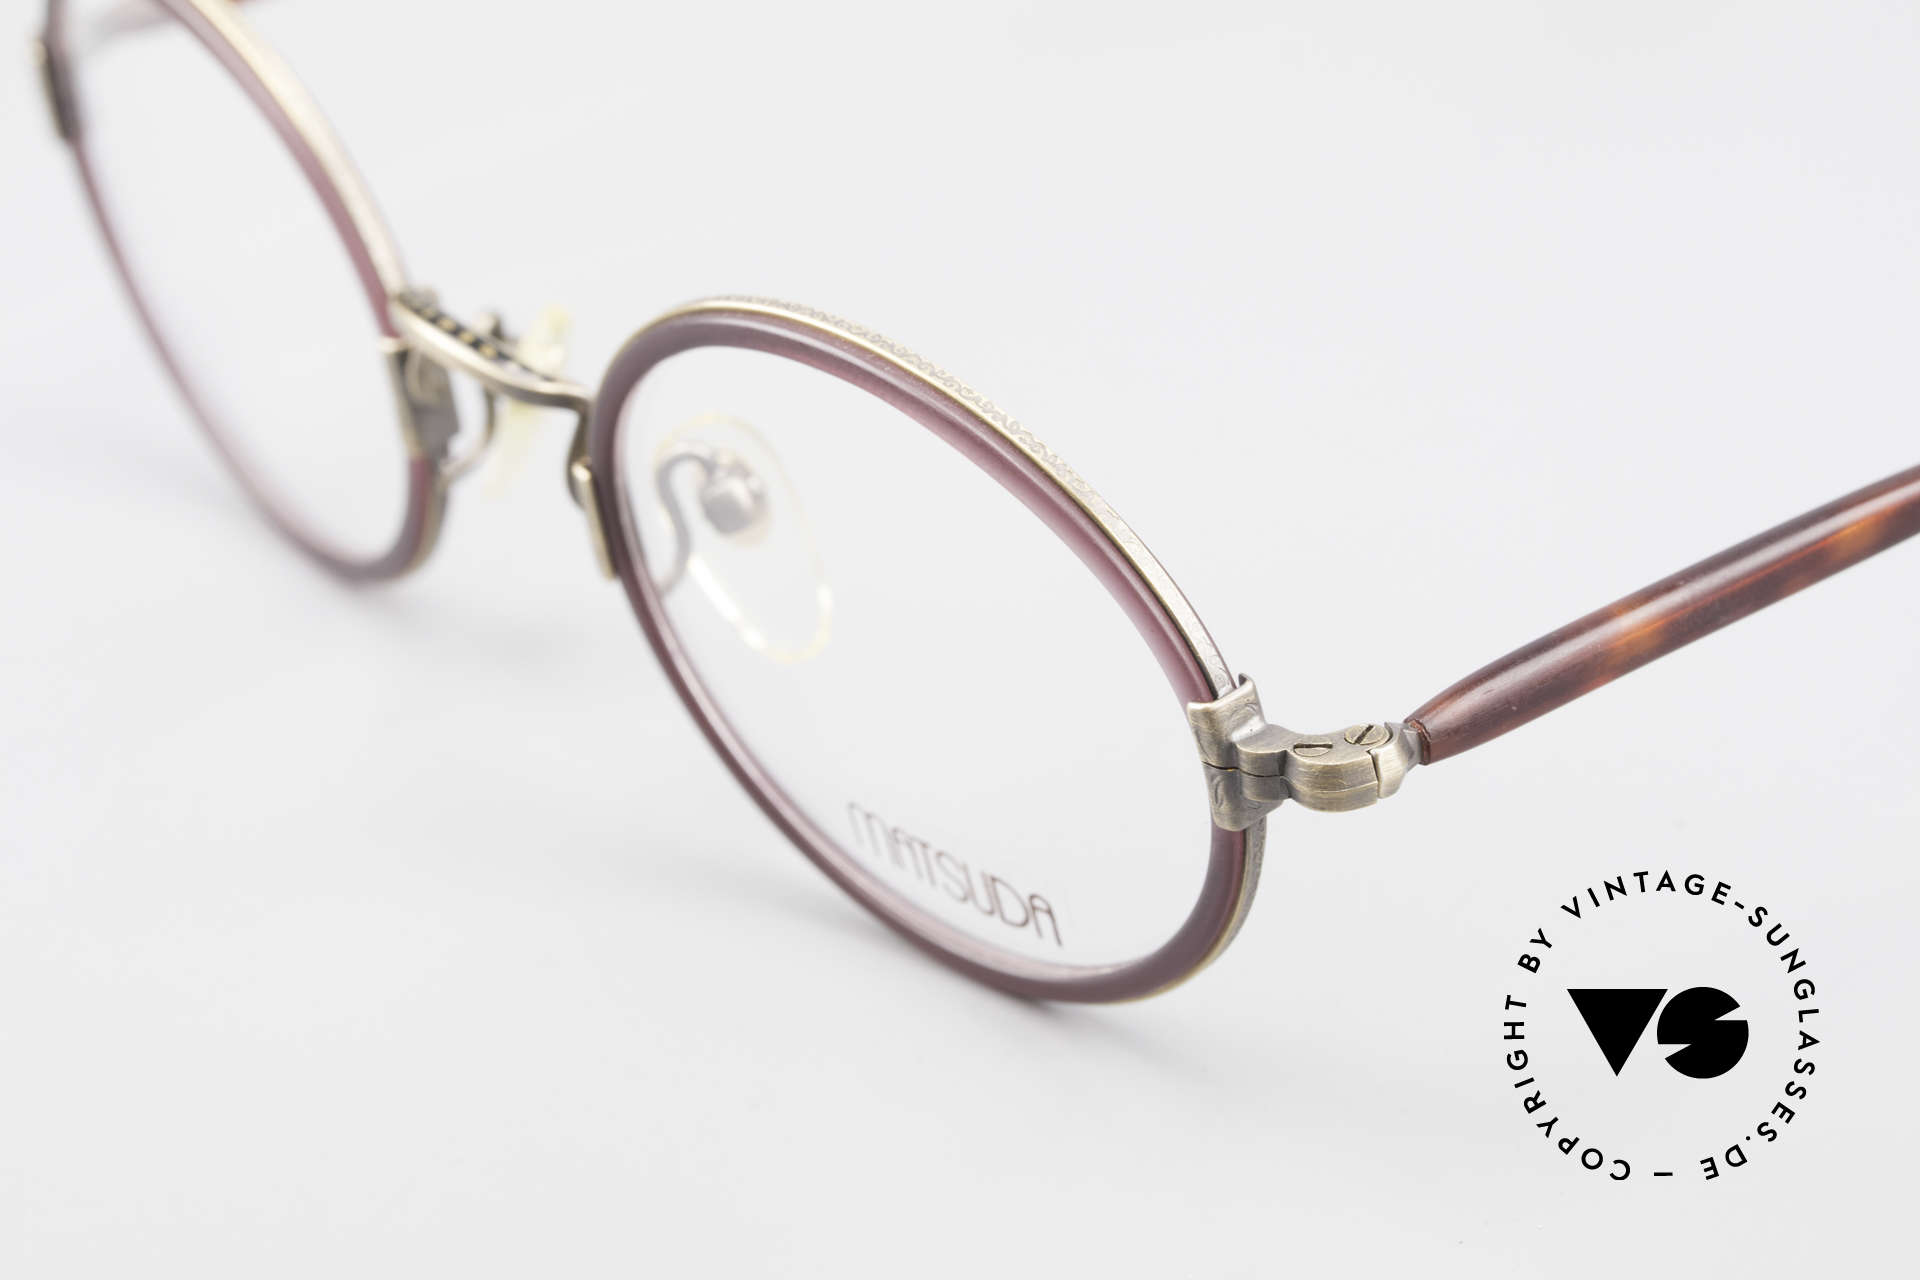 Matsuda 2834 Oval Round 90's Eyeglass-Frame, demo lenses can be easily replaced with prescriptions, Made for Men and Women